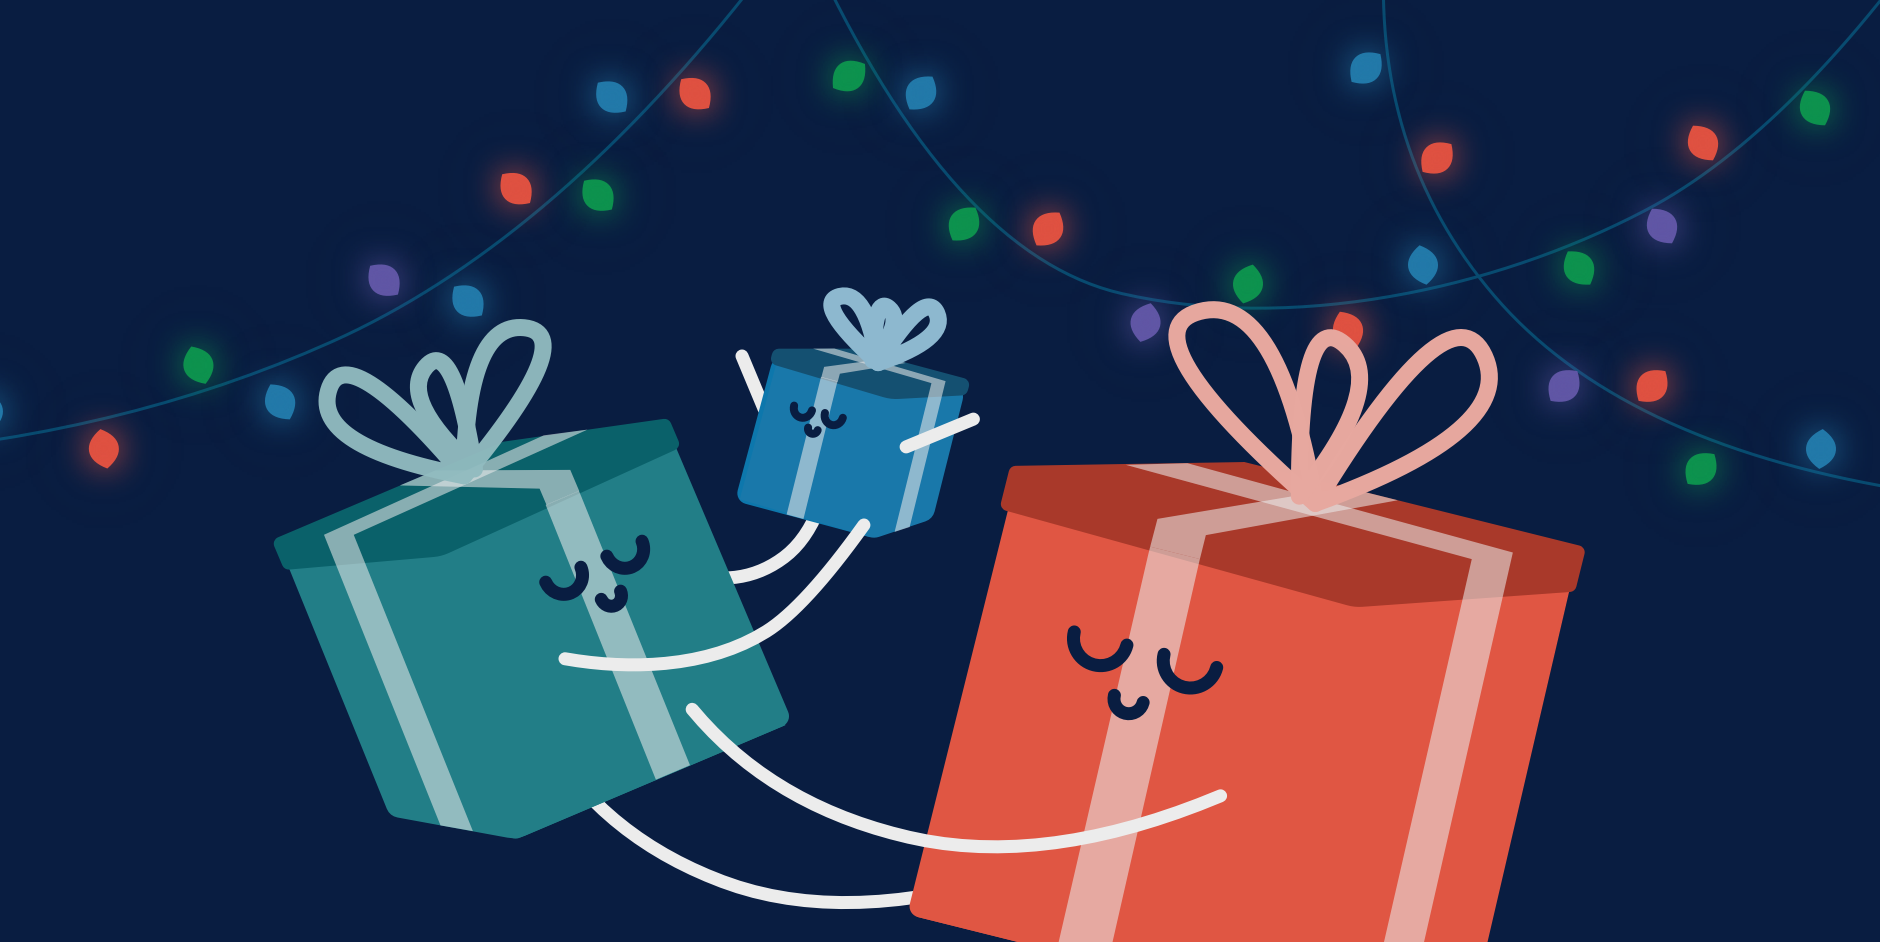 An illustration of wrapped gift boxes to illustrate the biggest design innovations of the 2010s